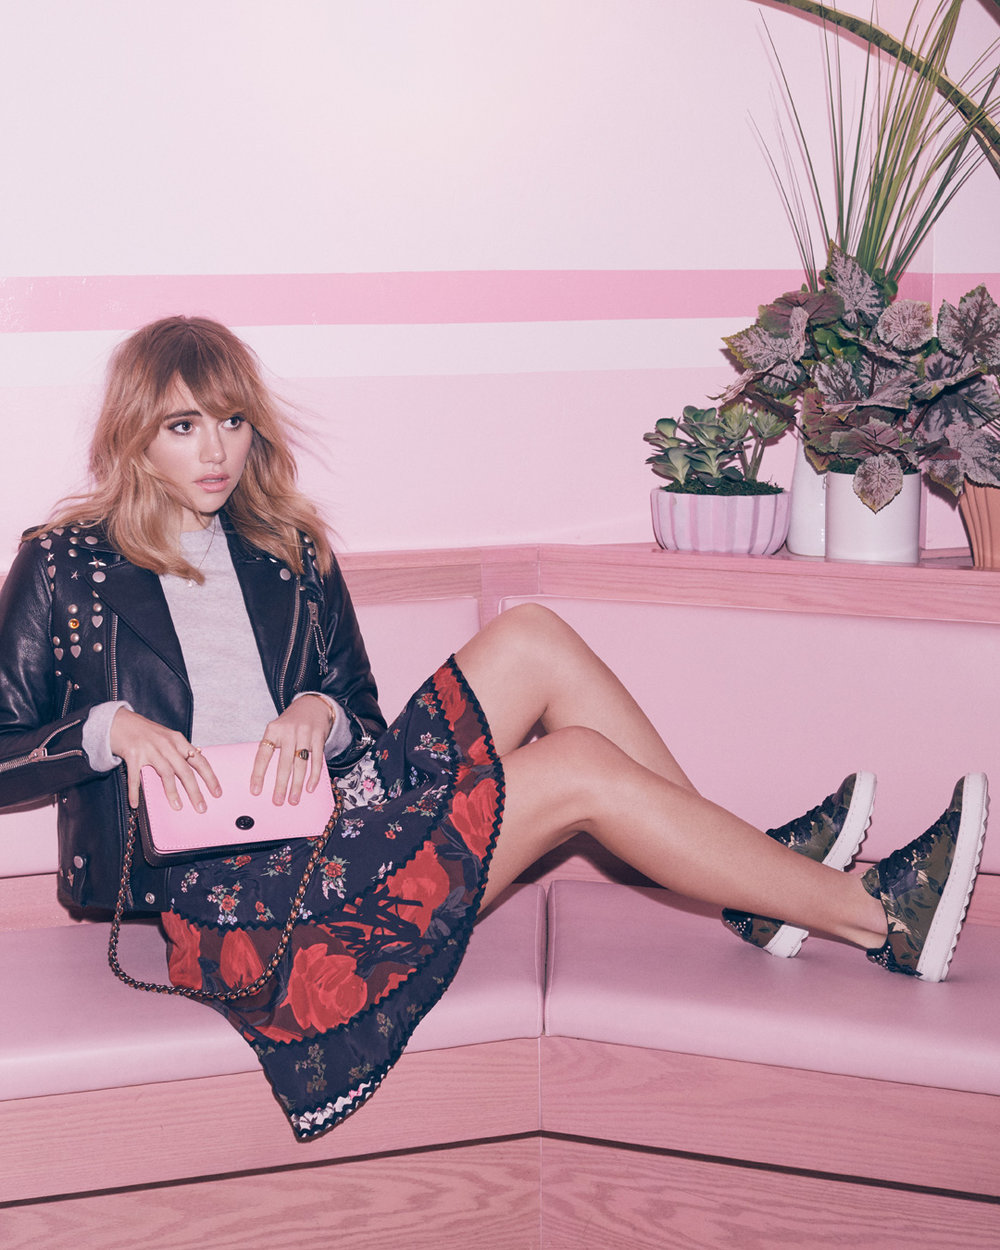 Copy of Suki Waterhouse for Coach x Harper's BAZAAR